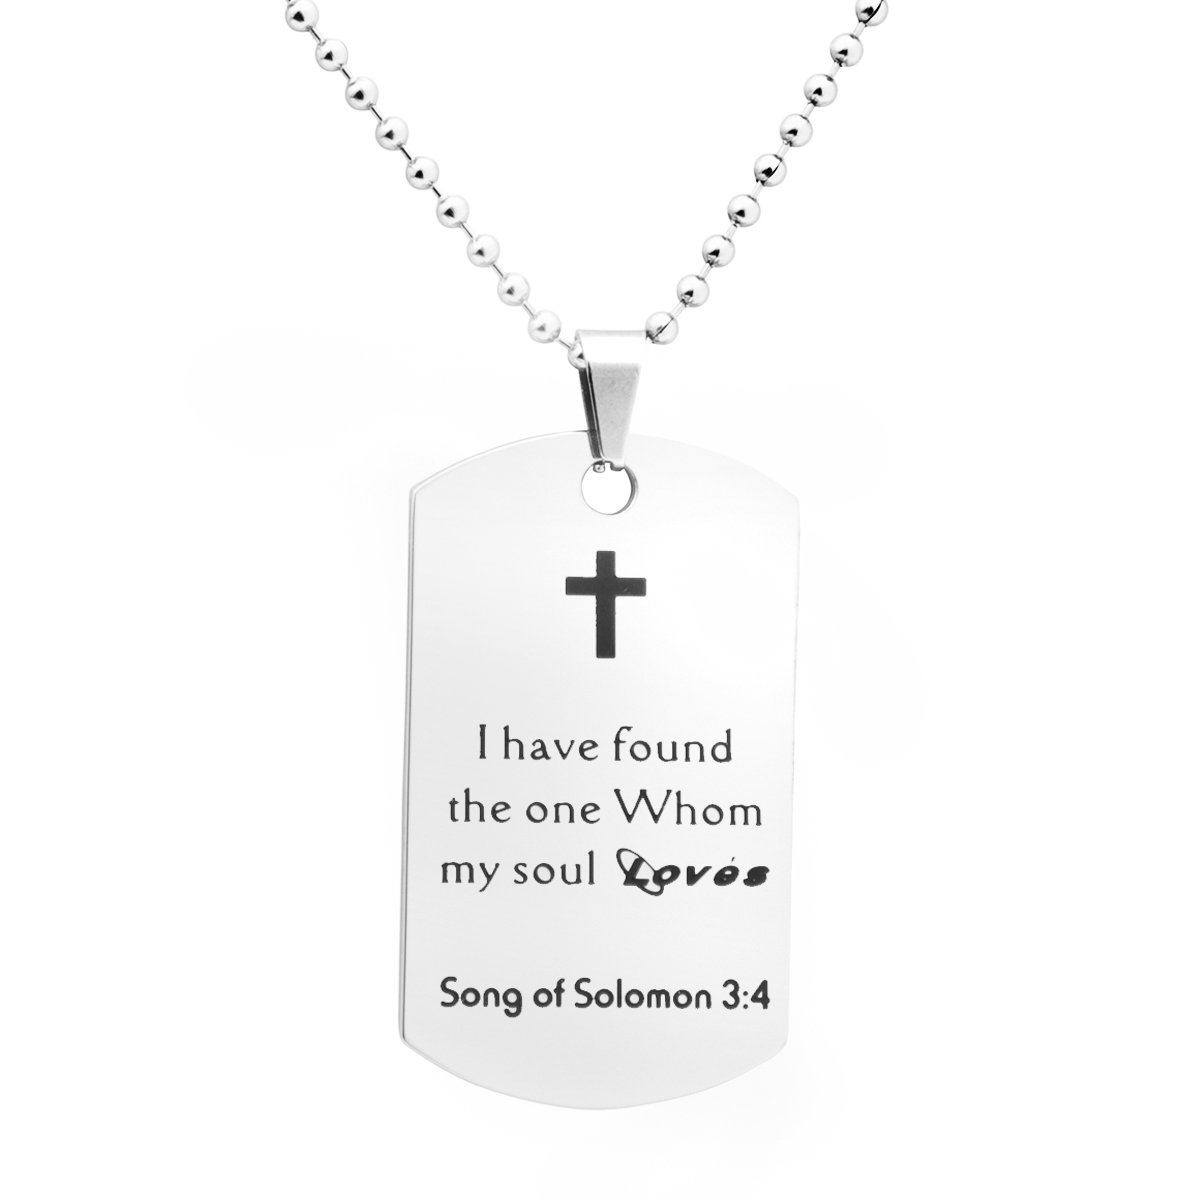 Kingmaruo Bible Verse Necklace Inspirational Christian Gift Stainless Steel Dog Tag Pendant with Ball Chain 24'' (Song of Solomon 3:4)